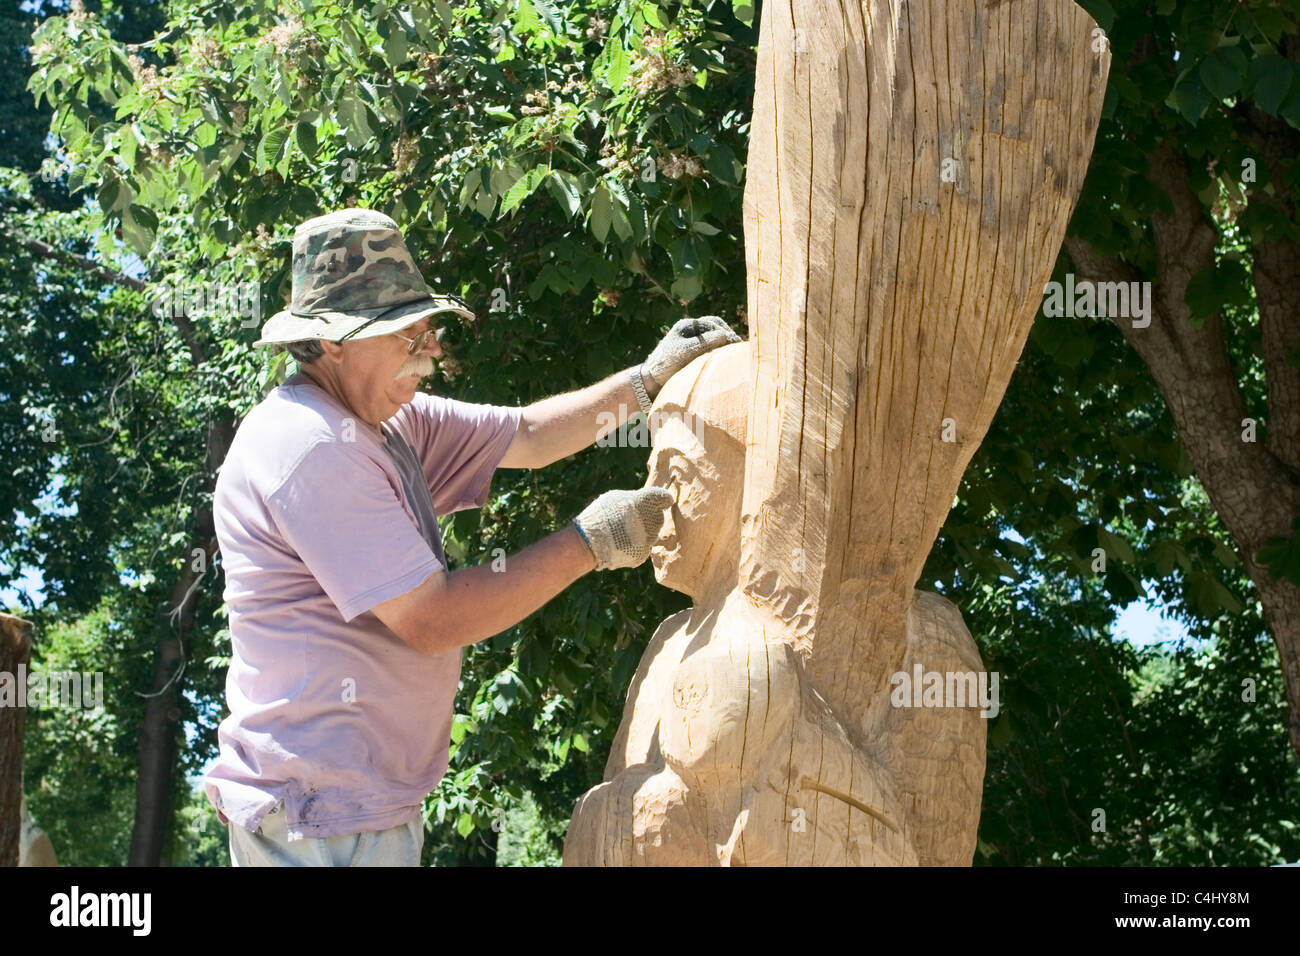 A sculptor creates a wooden sculpture - Stock Image